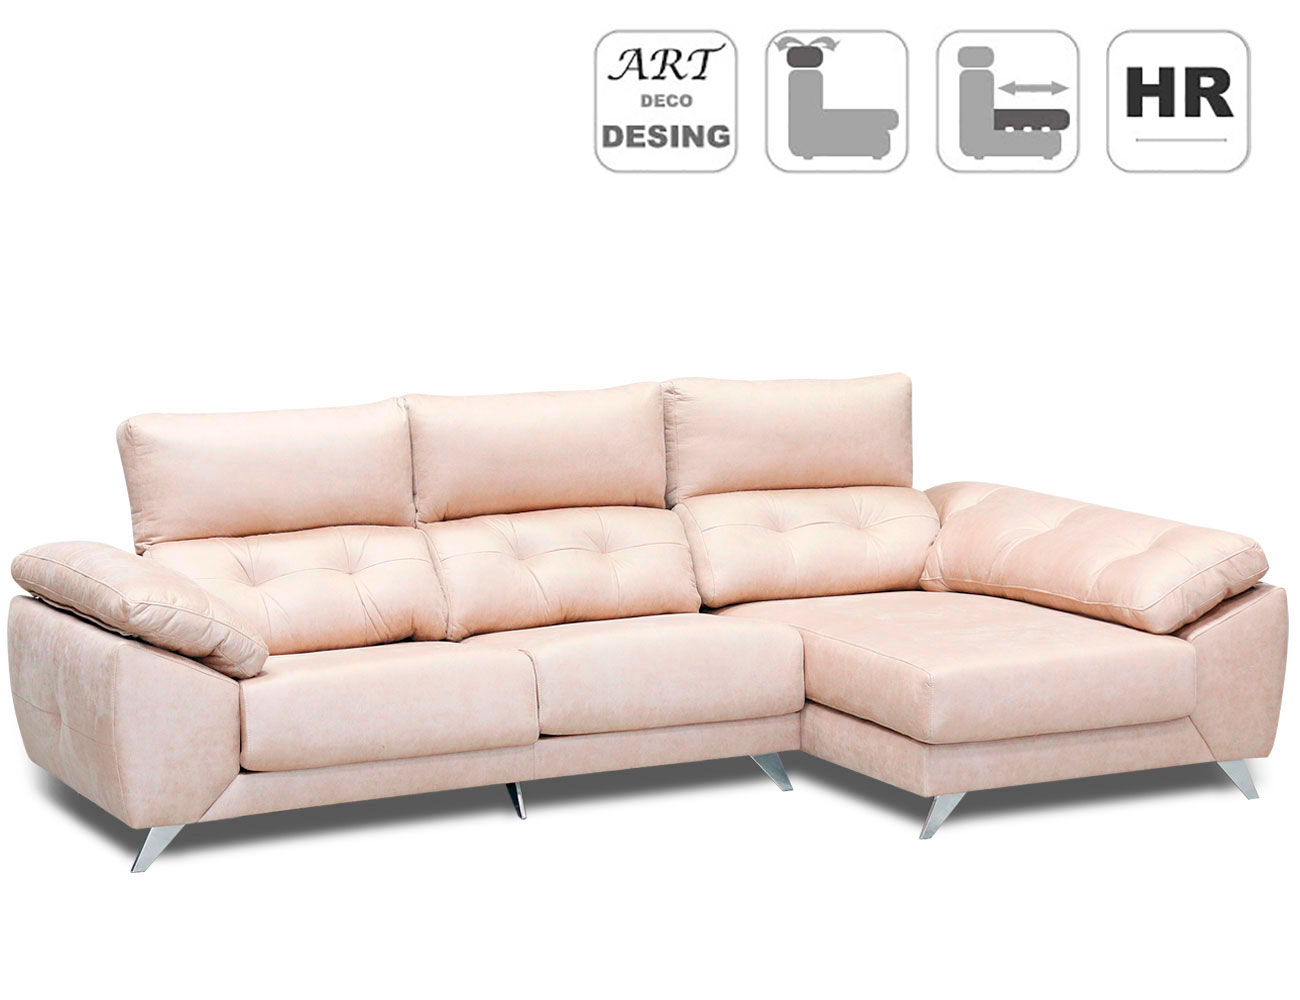 Sofa chaiselongue capitone anti machas gama alta detalle4